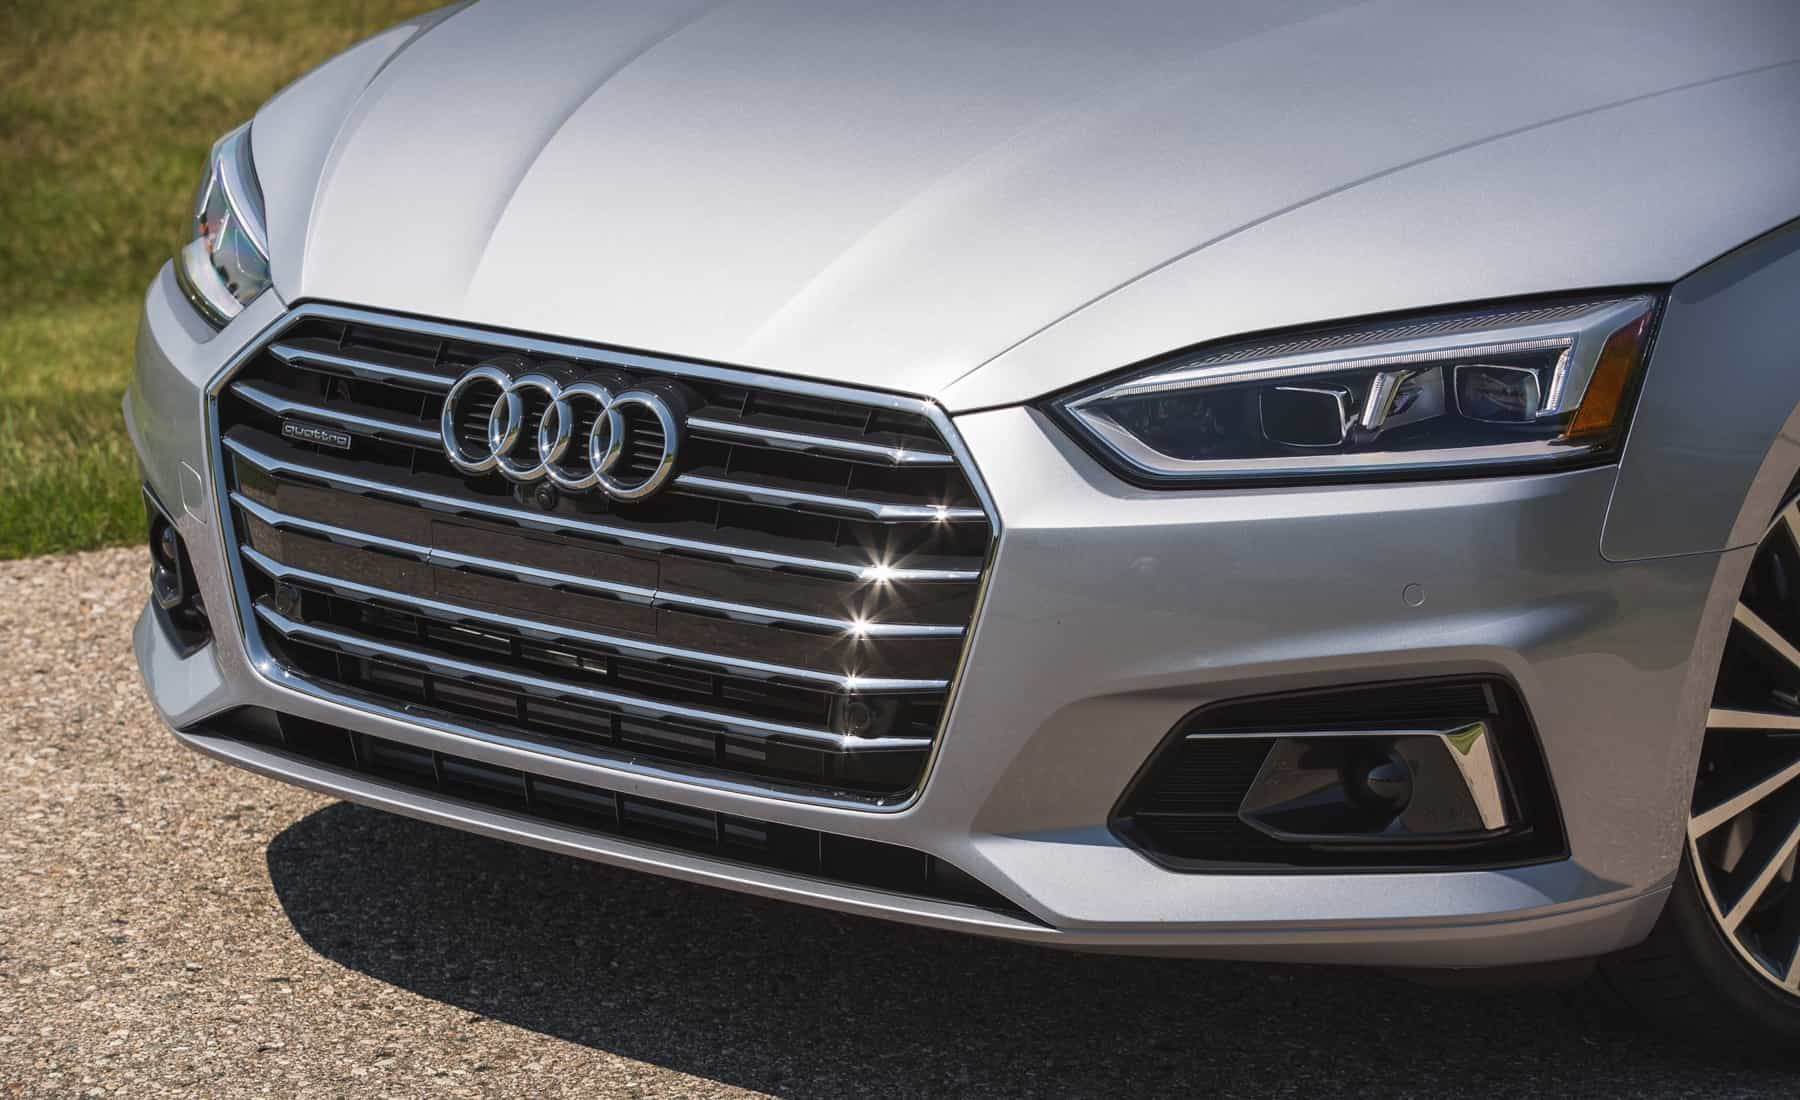 2018 Audi A5 Cabriolet Exterior View Grille And Bumper (Photo 36 of 45)